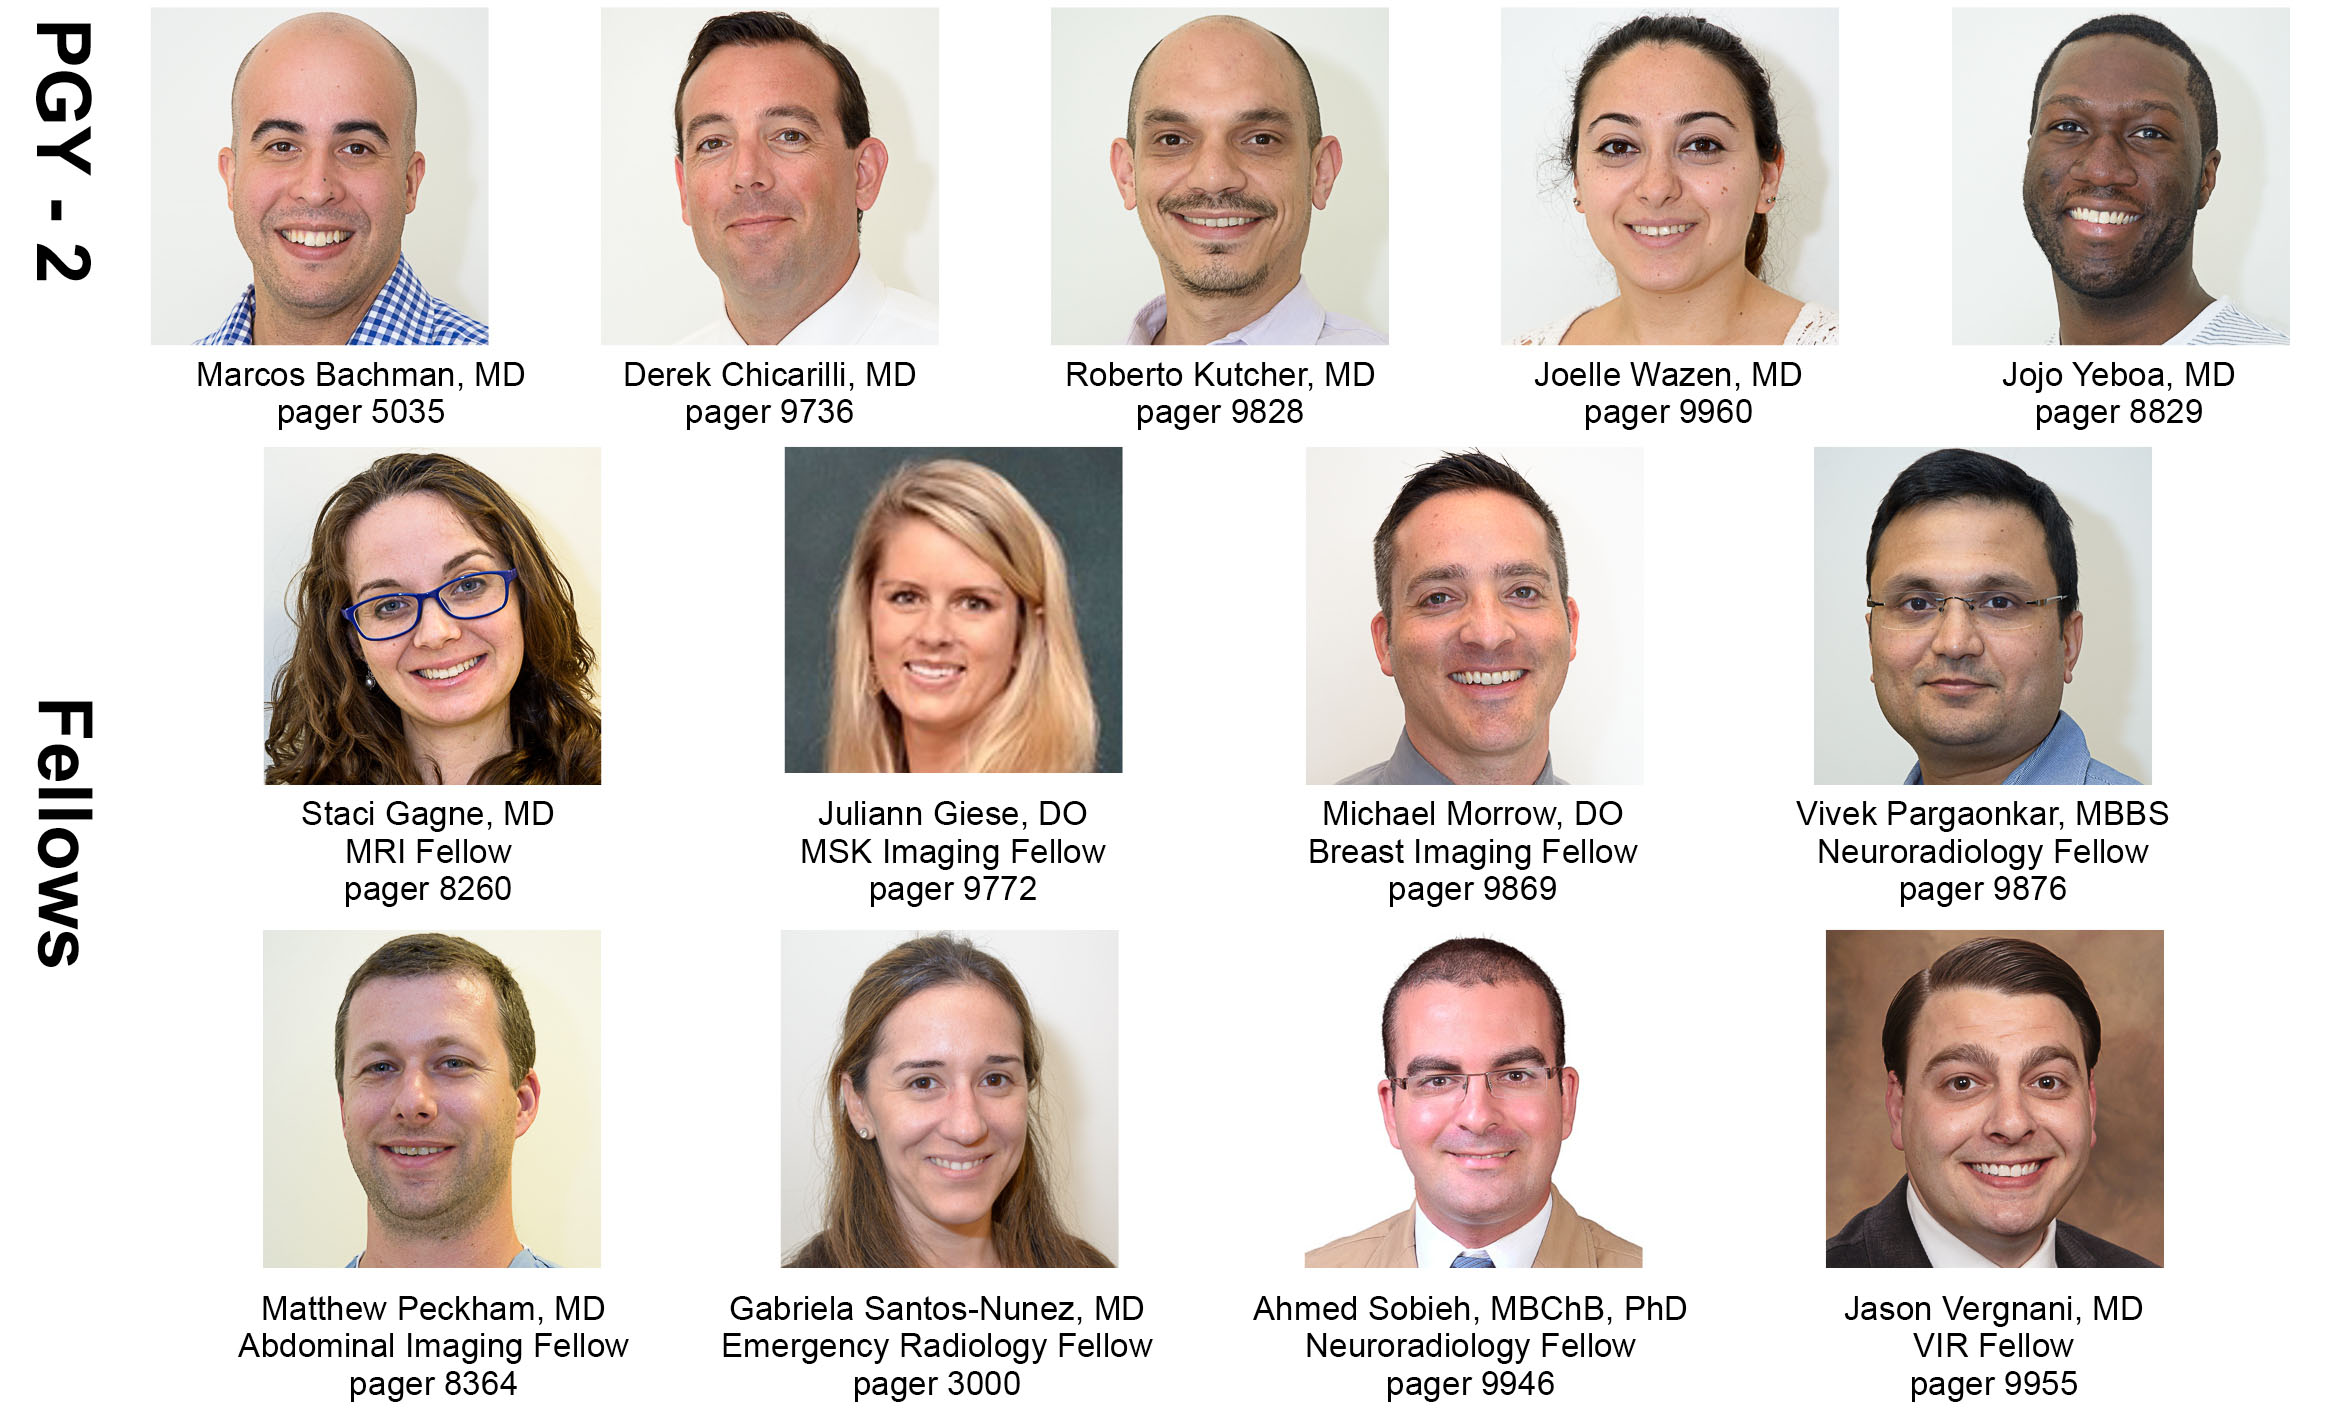 New Radiology Residents and Fellows 2017-2018, UMass Medical School